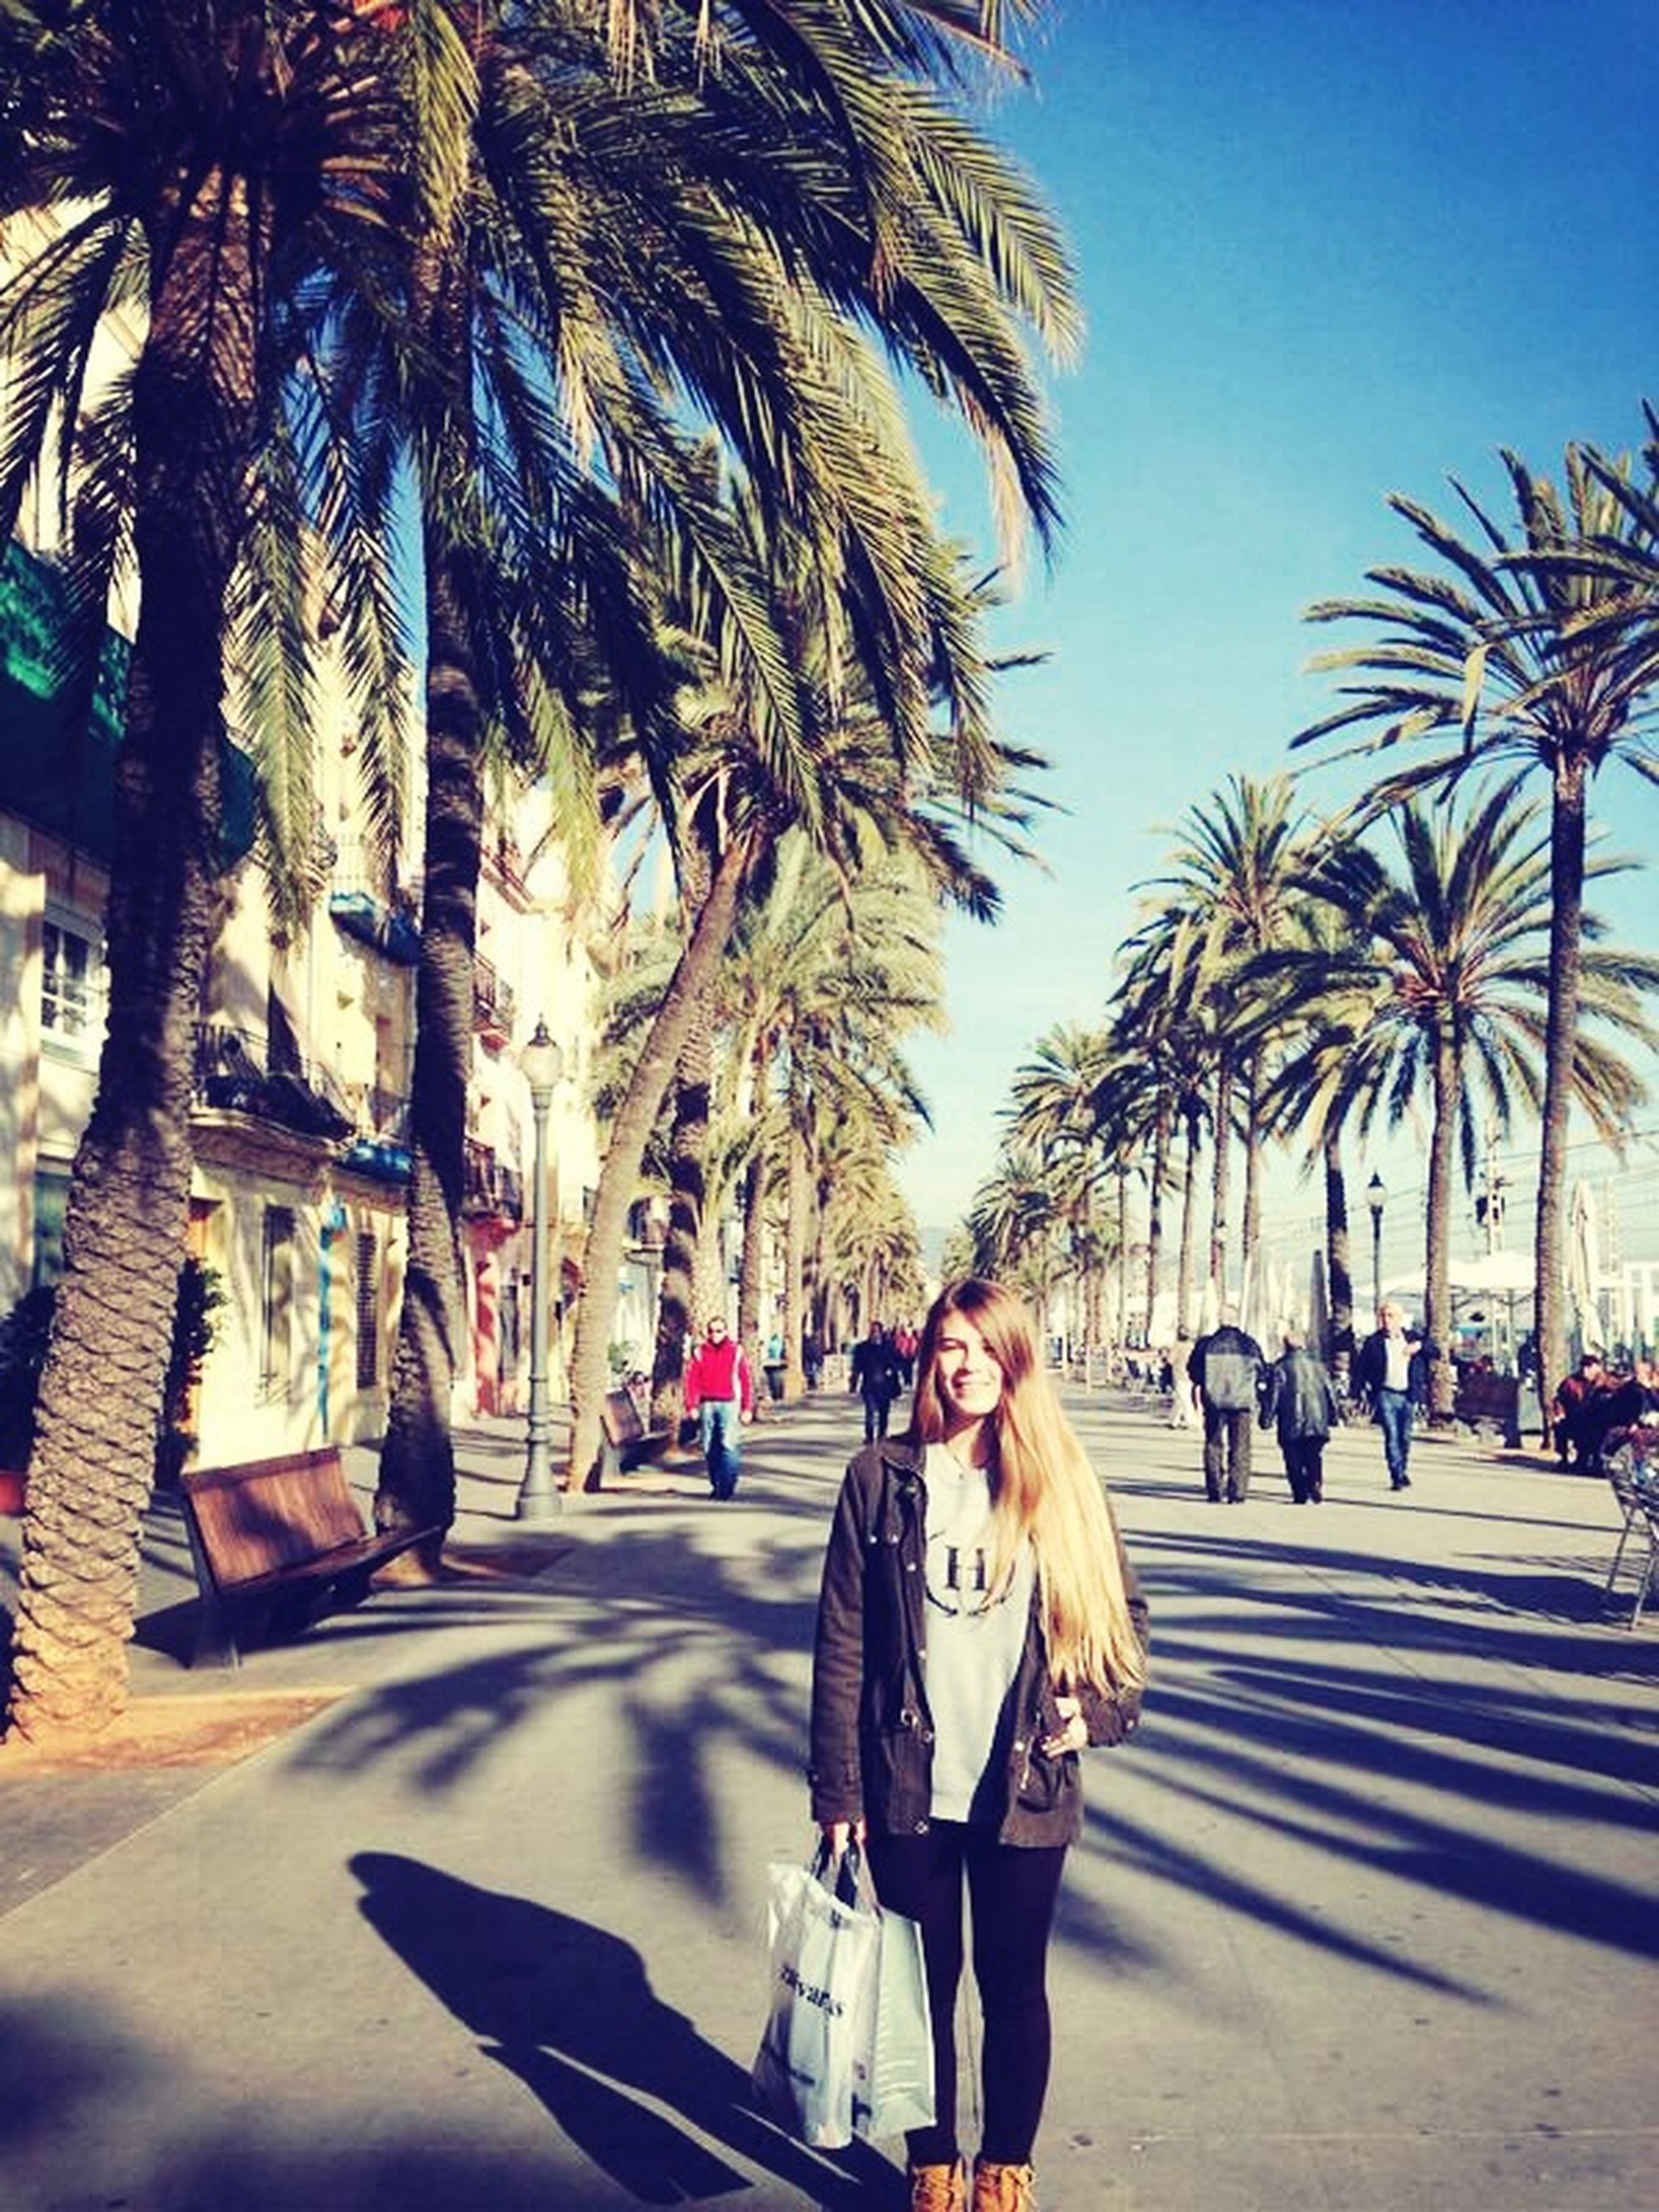 palm tree, tree, lifestyles, leisure activity, person, clear sky, men, street, walking, shadow, large group of people, sunlight, road, city life, tree trunk, city, day, building exterior, treelined